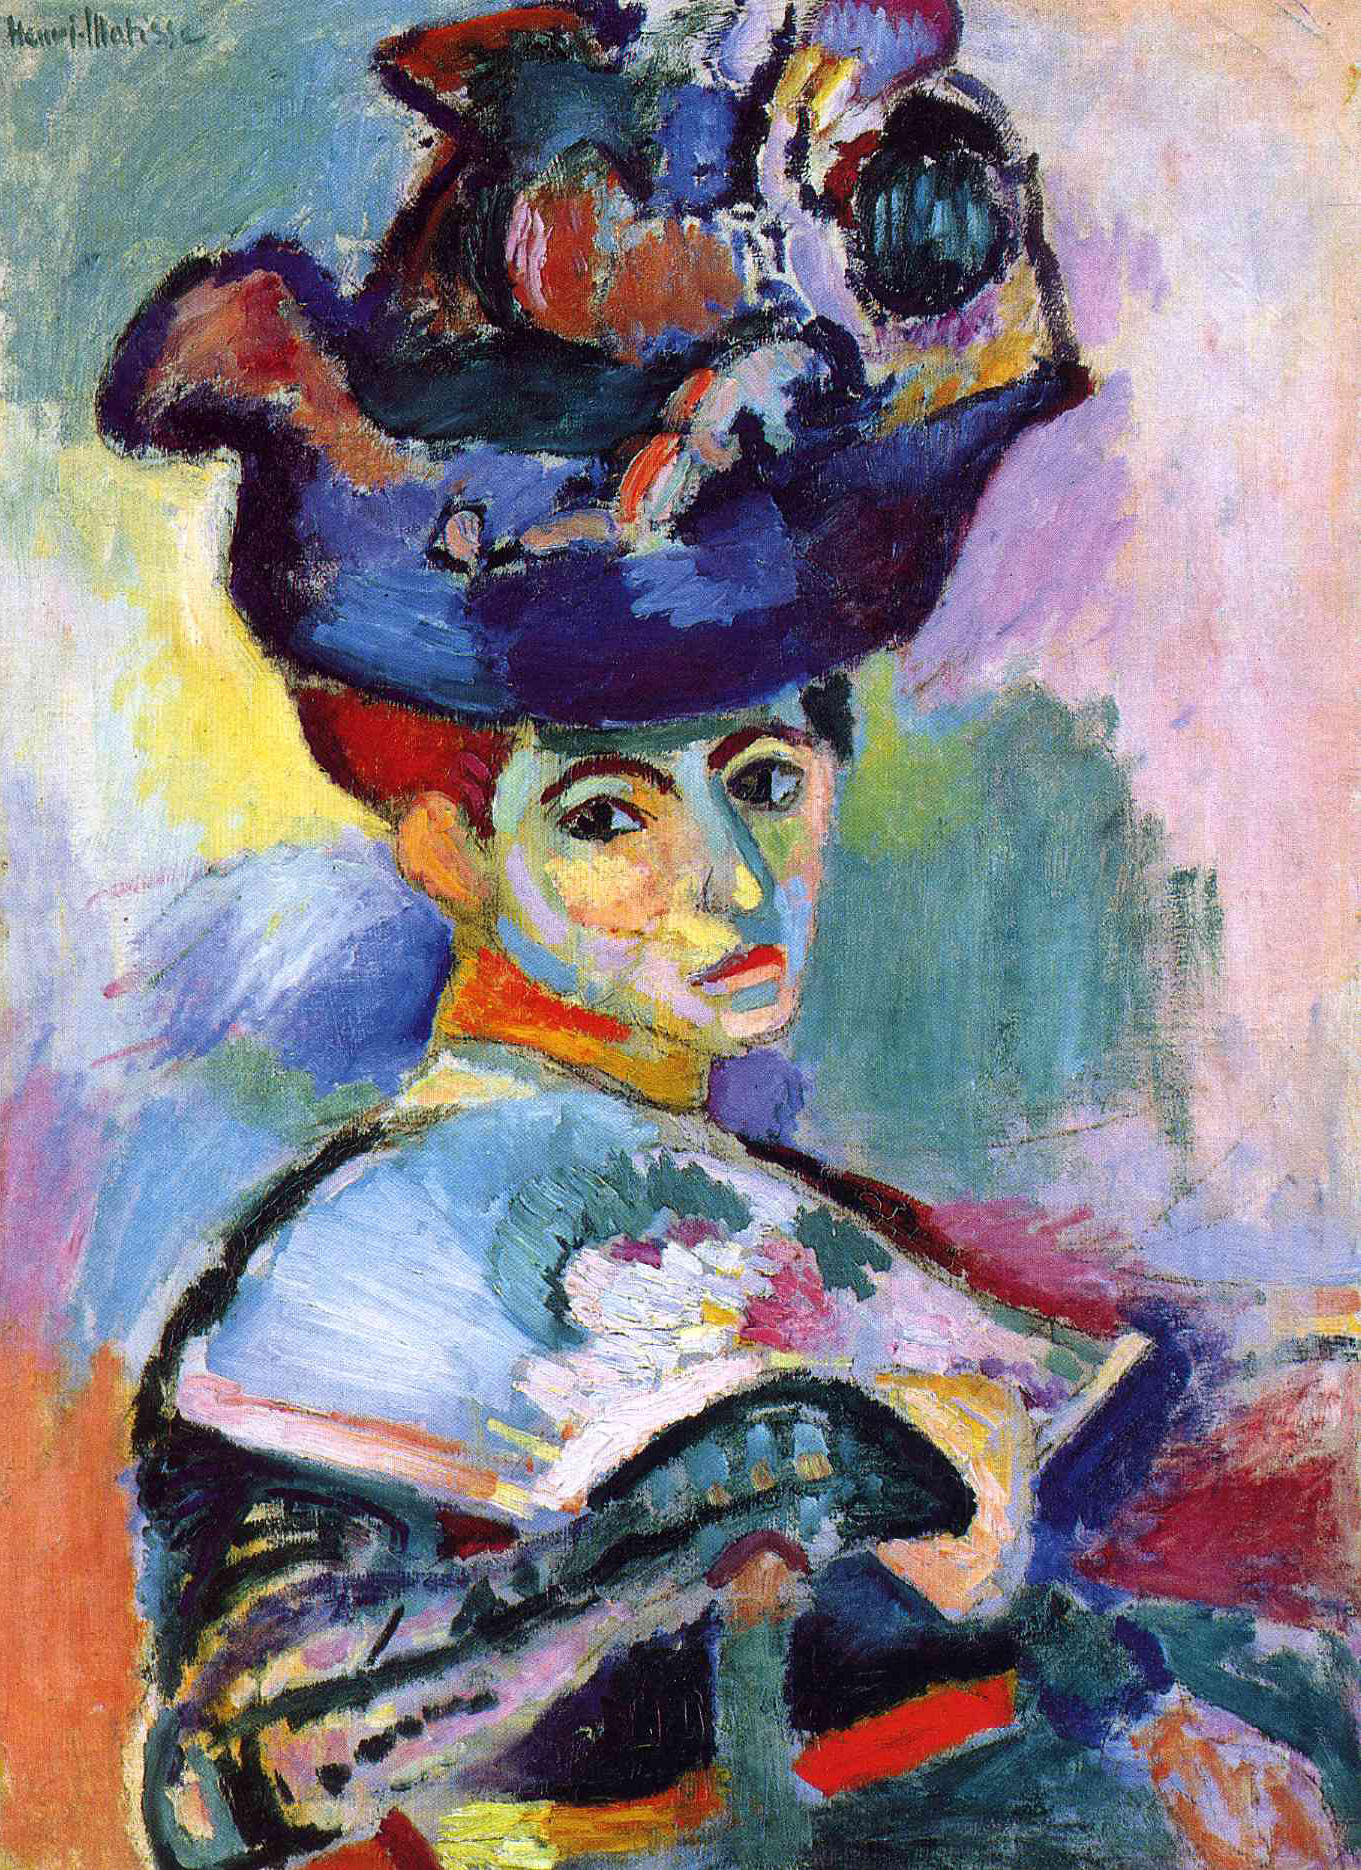 The Woman with a Hat, 1905 — Henri Matisse